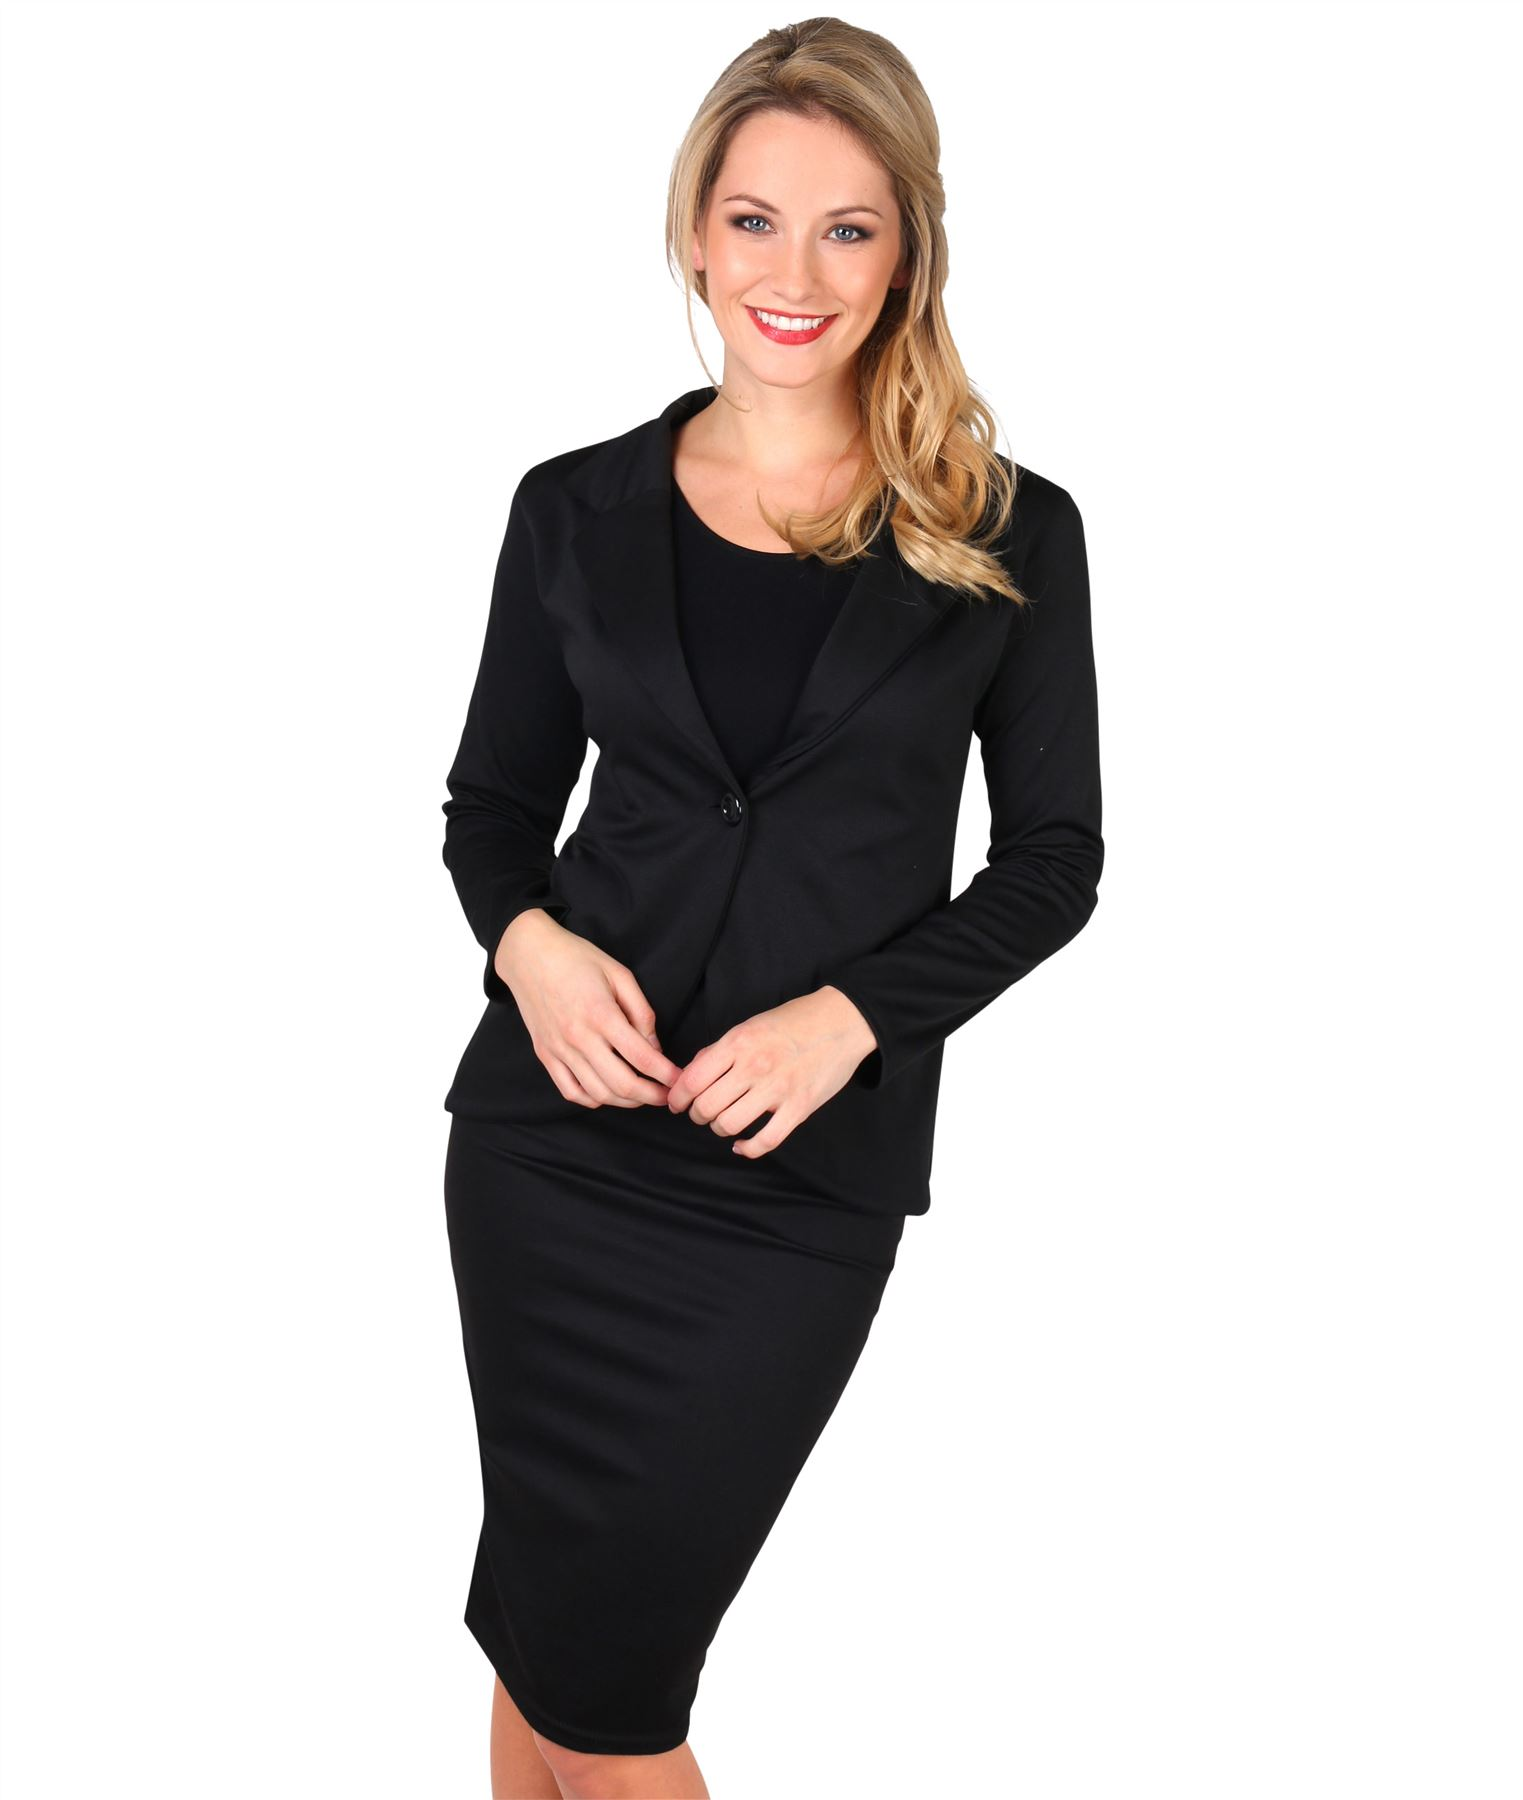 Womens-Ladies-Pencil-Skirt-Midi-Knee-Long-High-Waist-Work-Office-Business-Smart thumbnail 3